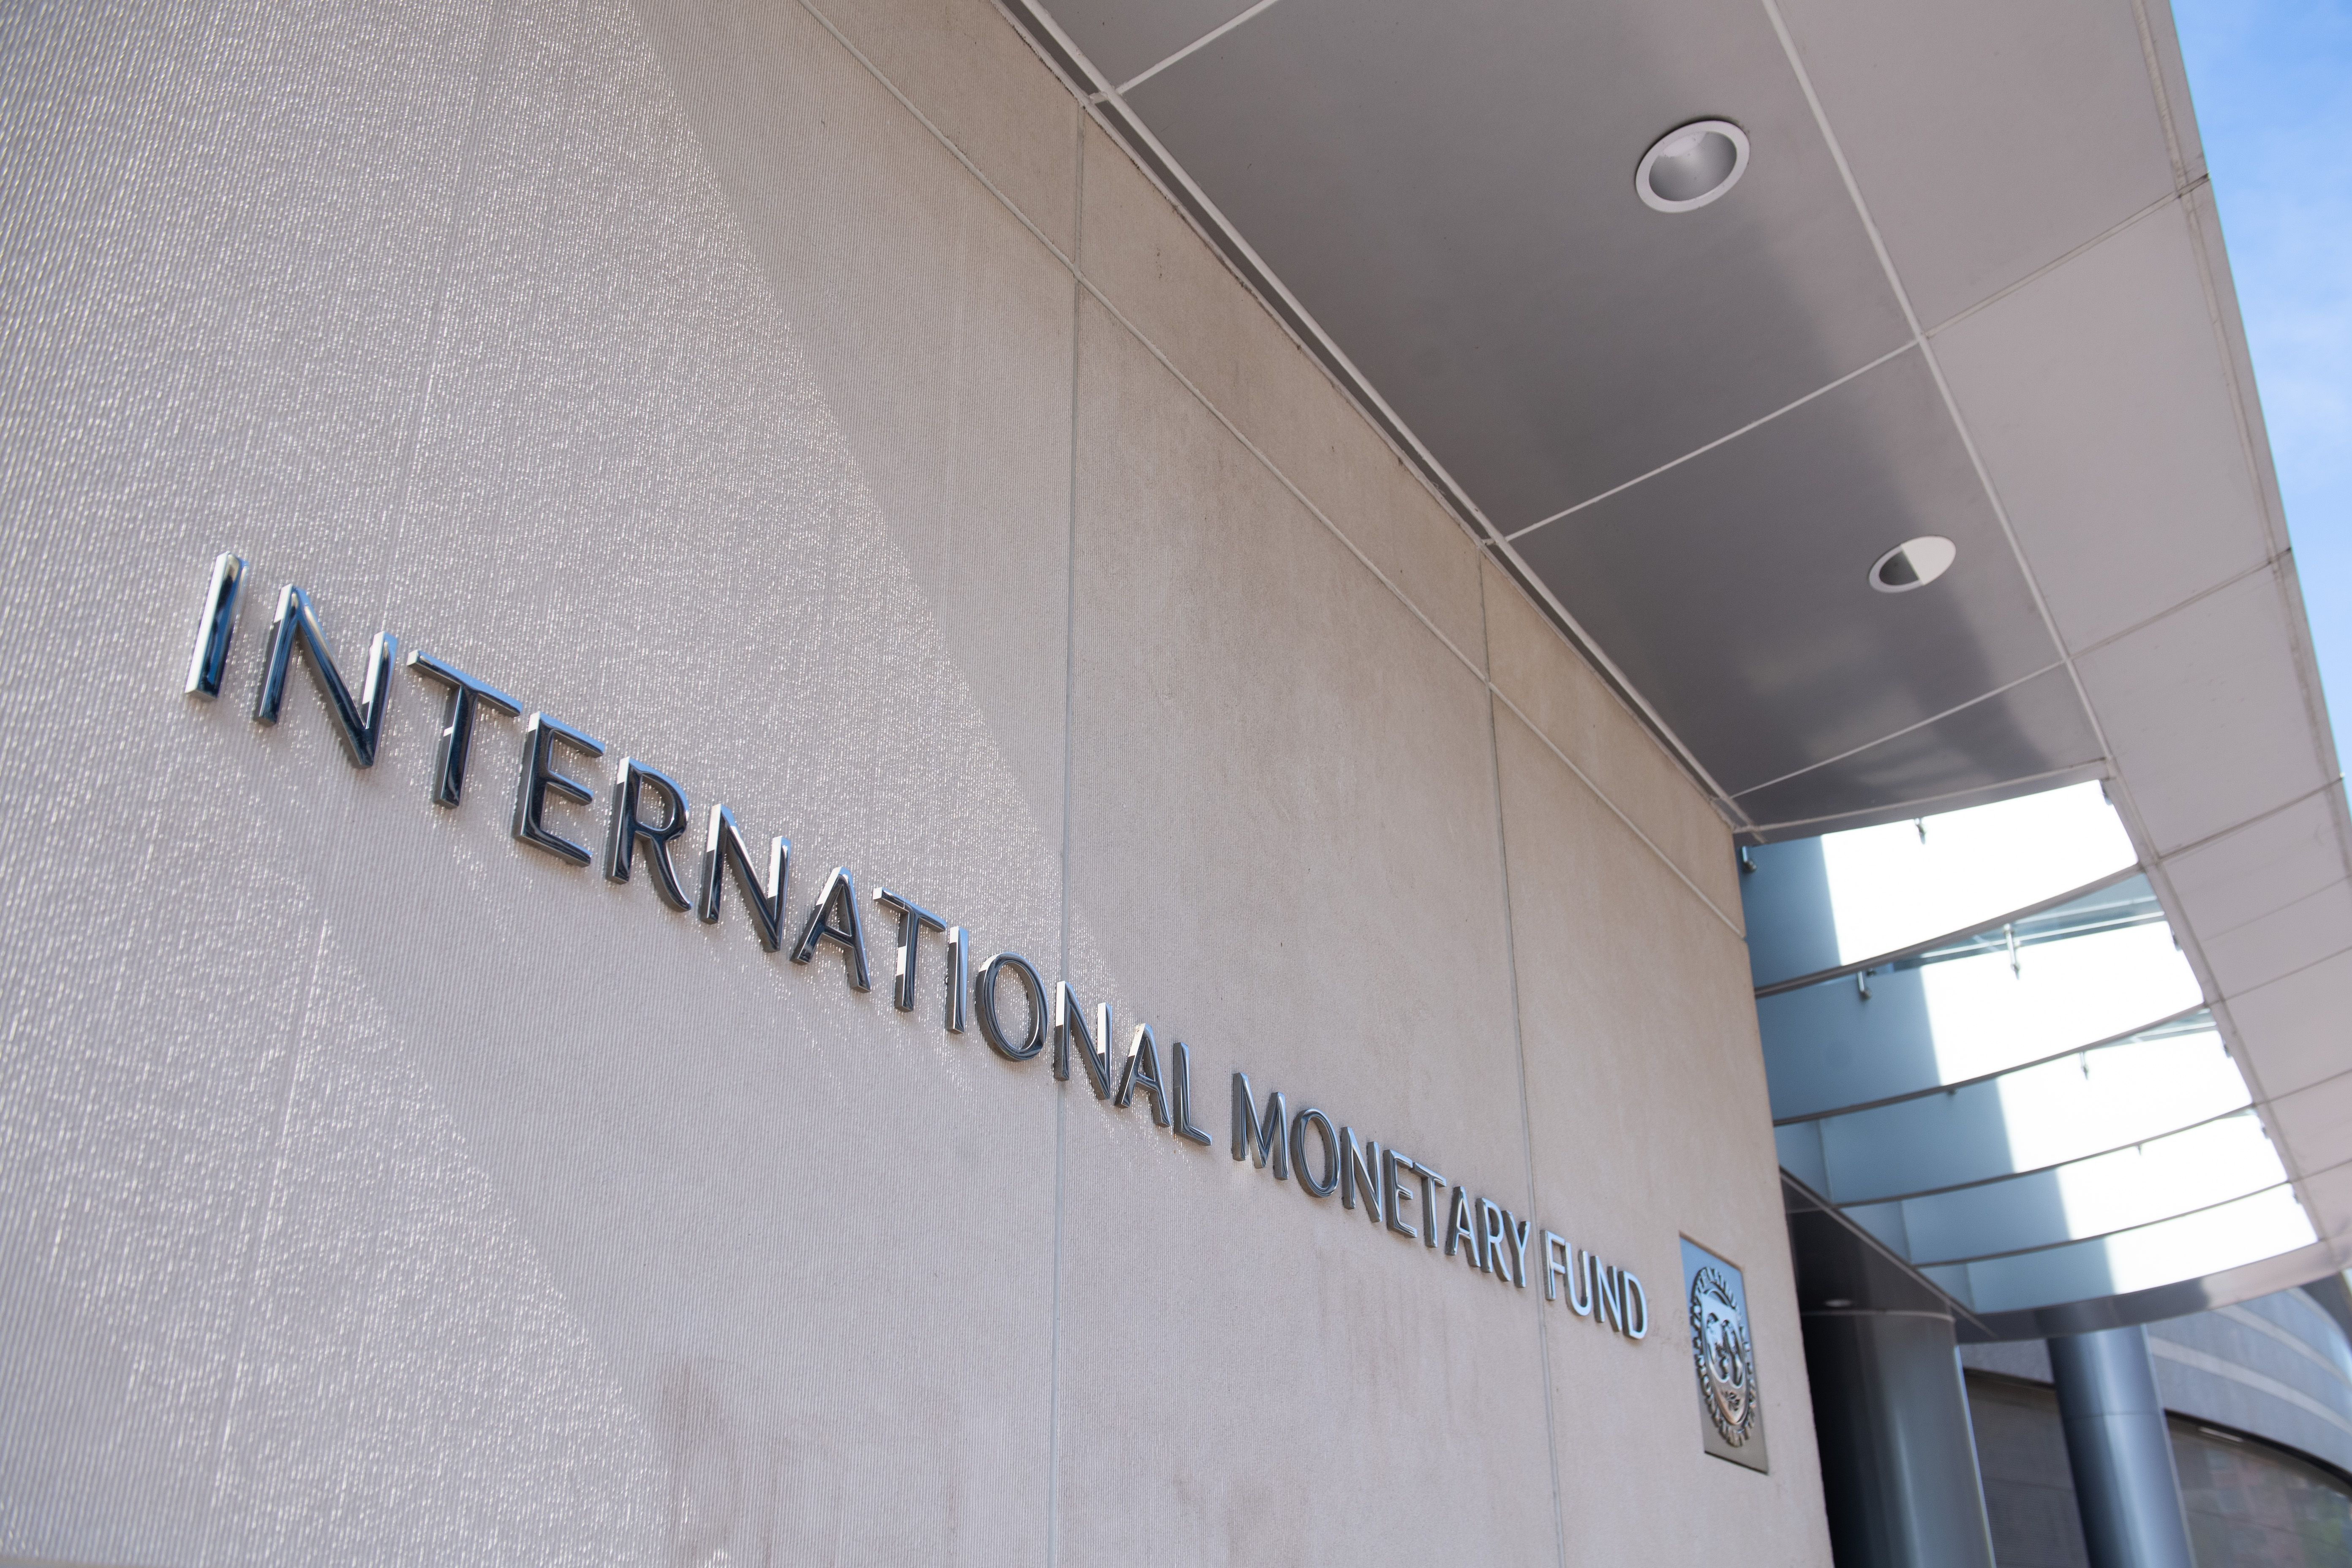 South Africans should accept that the IMF is neither their worst enemy nor their saviour